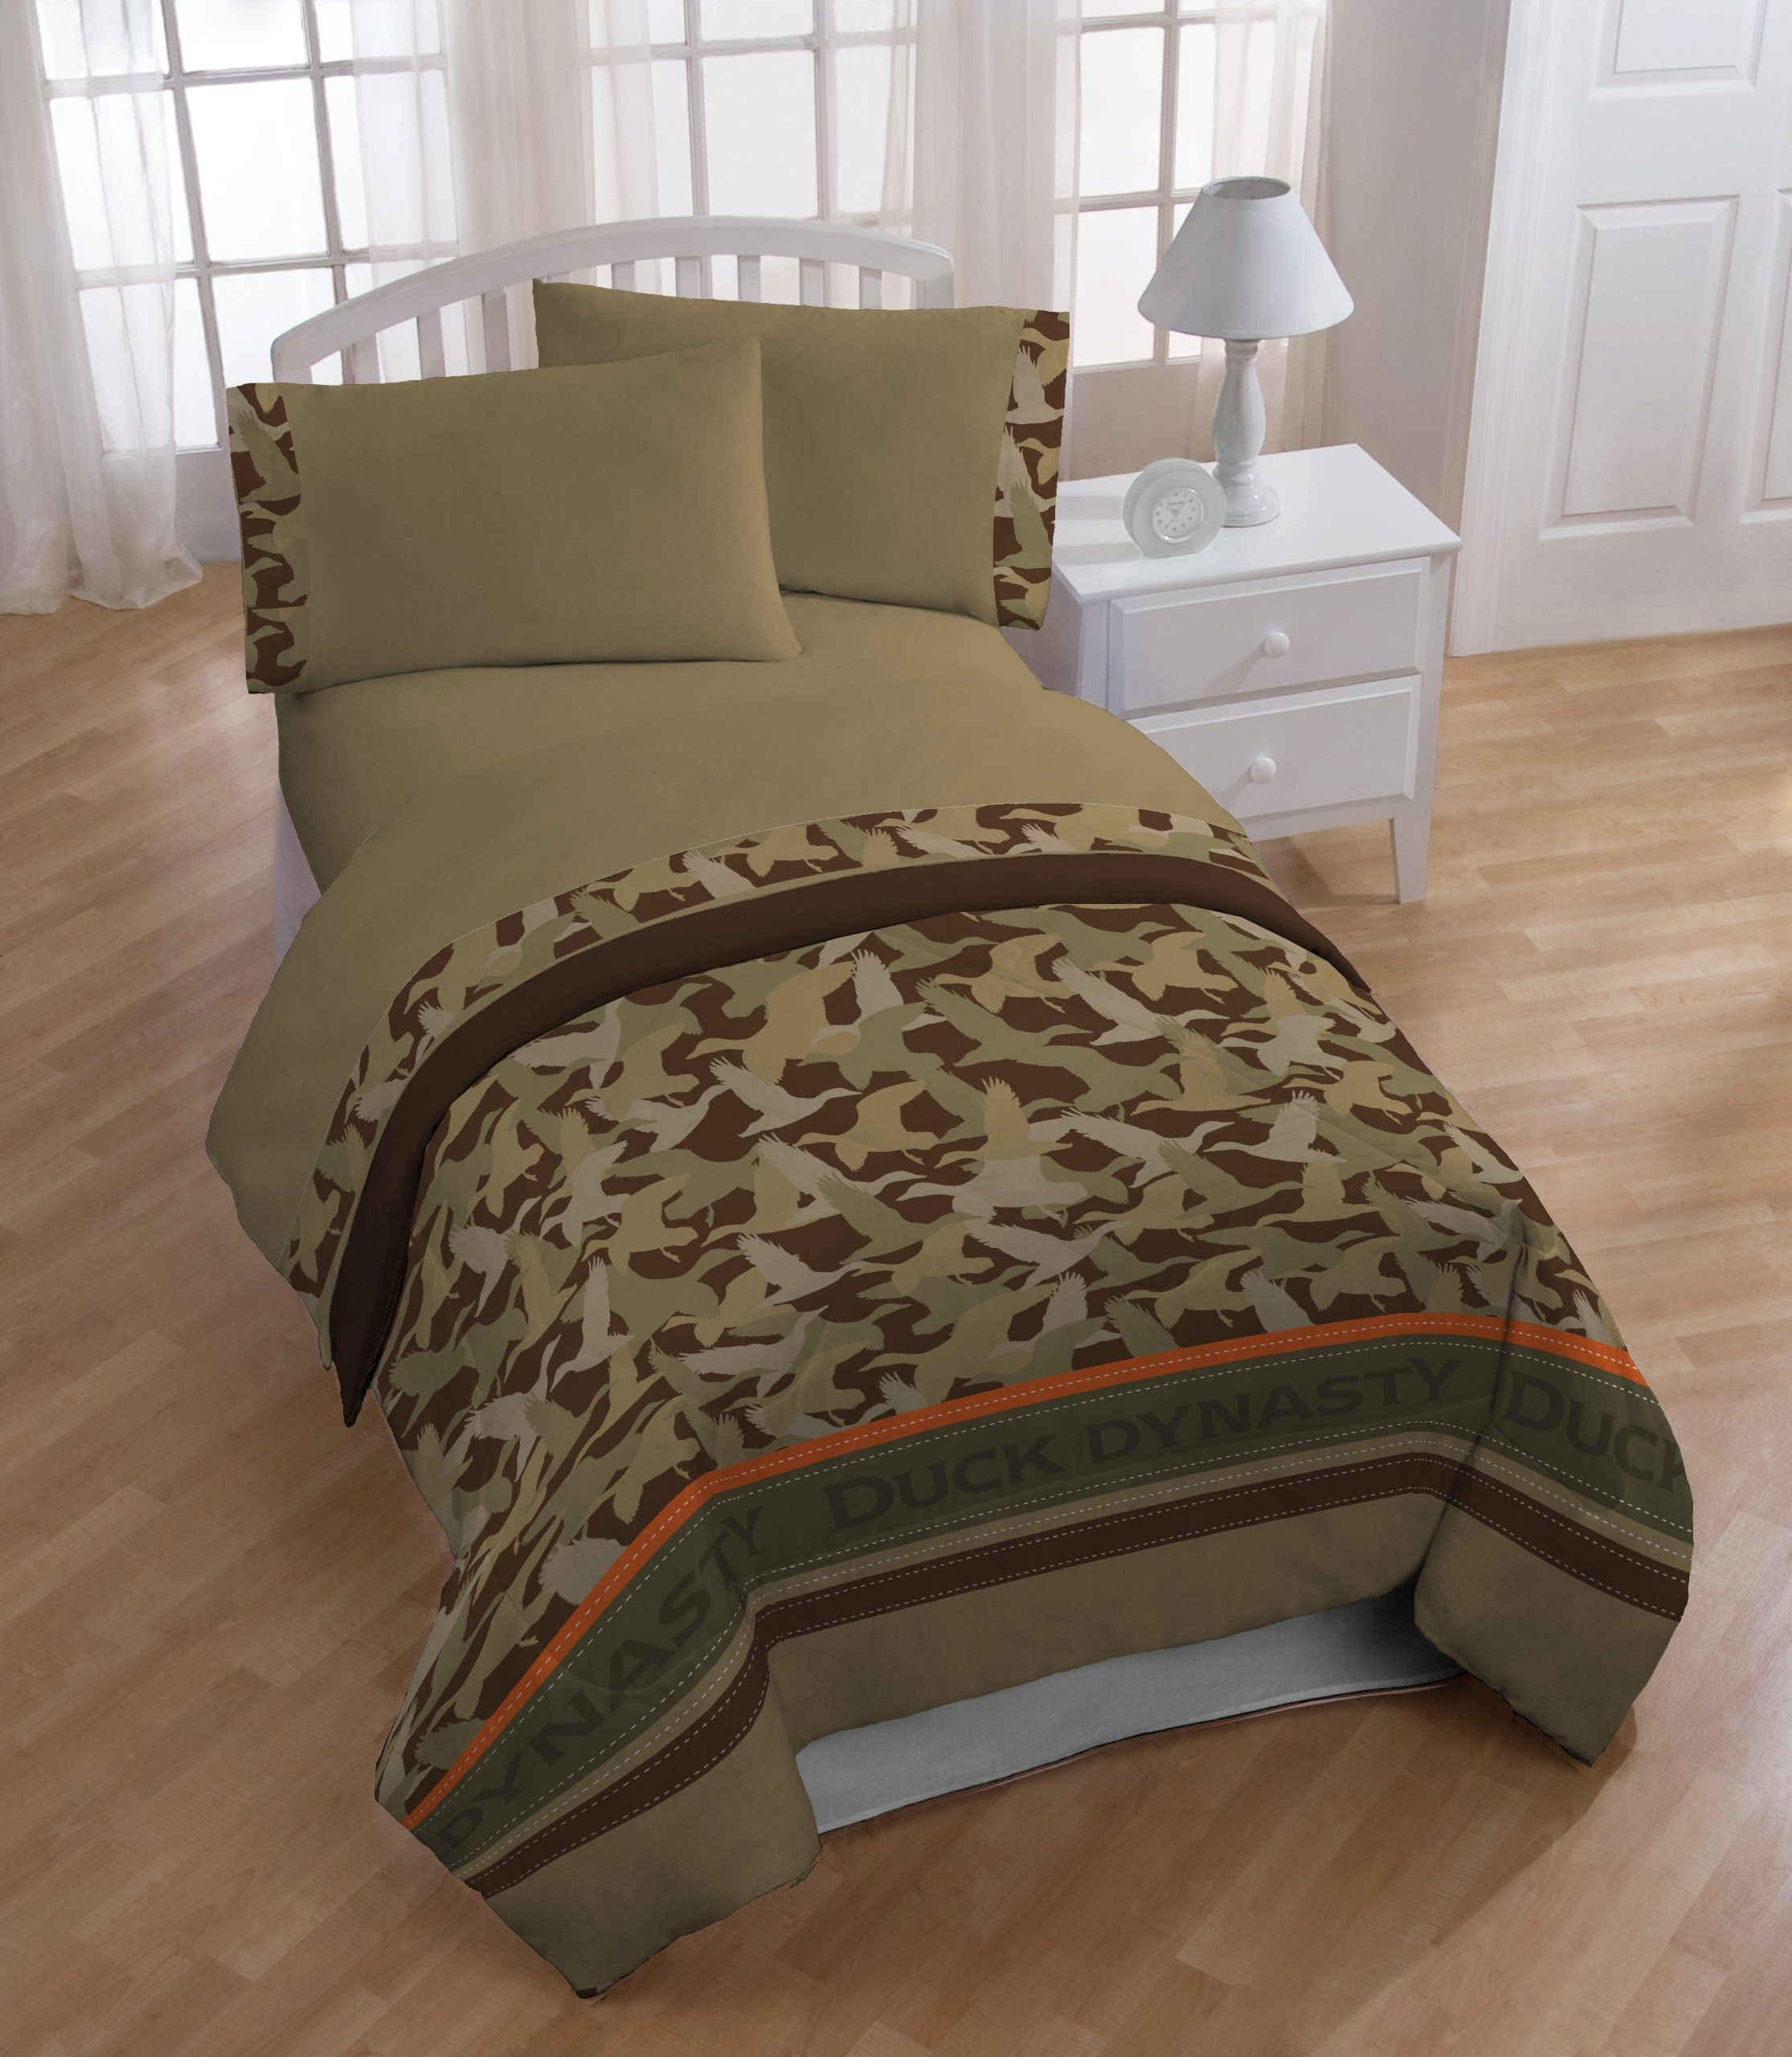 Exceptional Look At This Duck Dynasty Duck Dynasty Camo Stripe Sheet Set By Duck Dynasty